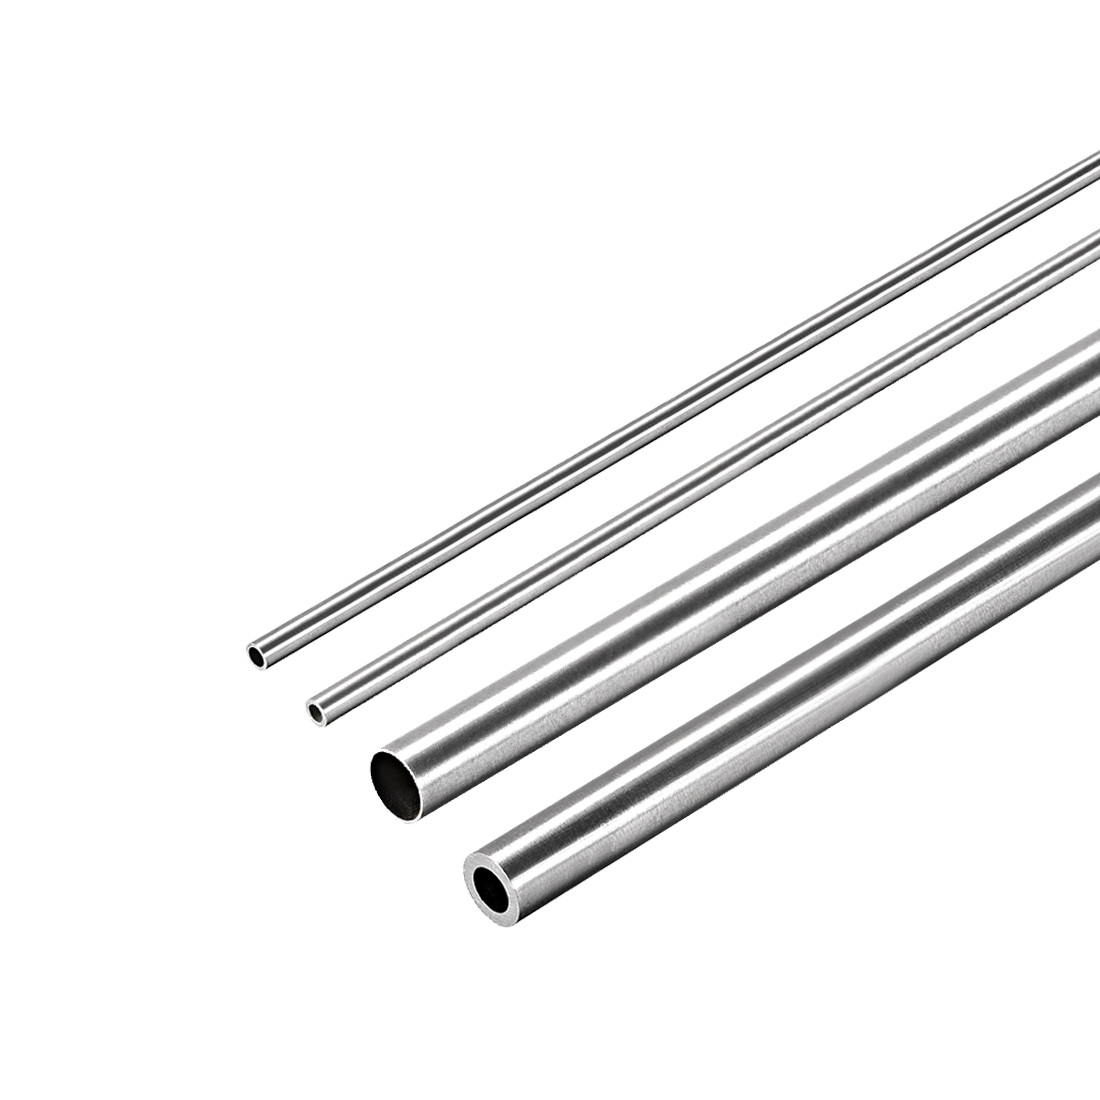 4pcs OD 7mm ID 5mm Length 250mm 304 Stainless Steel Capillary Tube